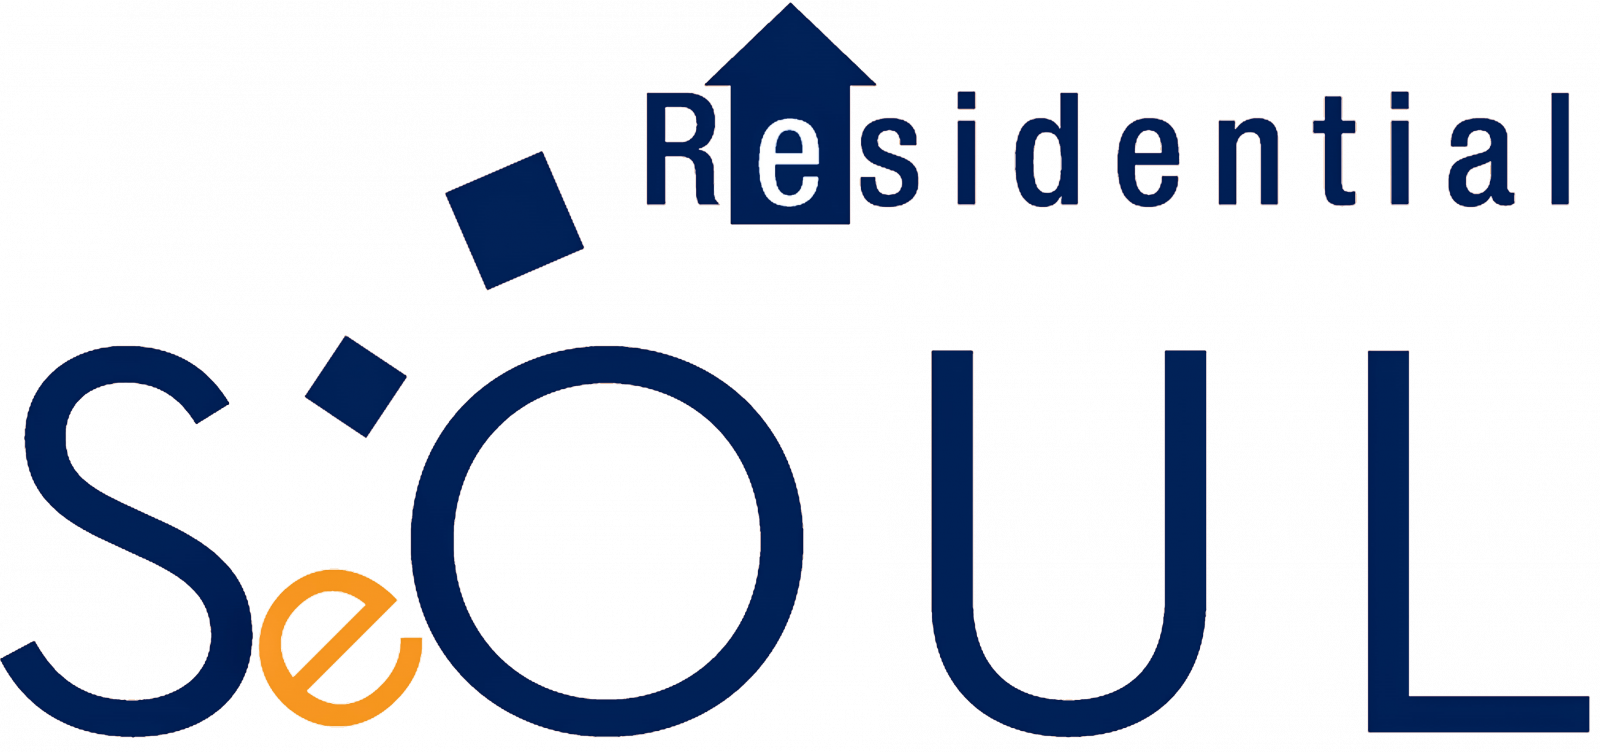 Seoul Residential Ltd